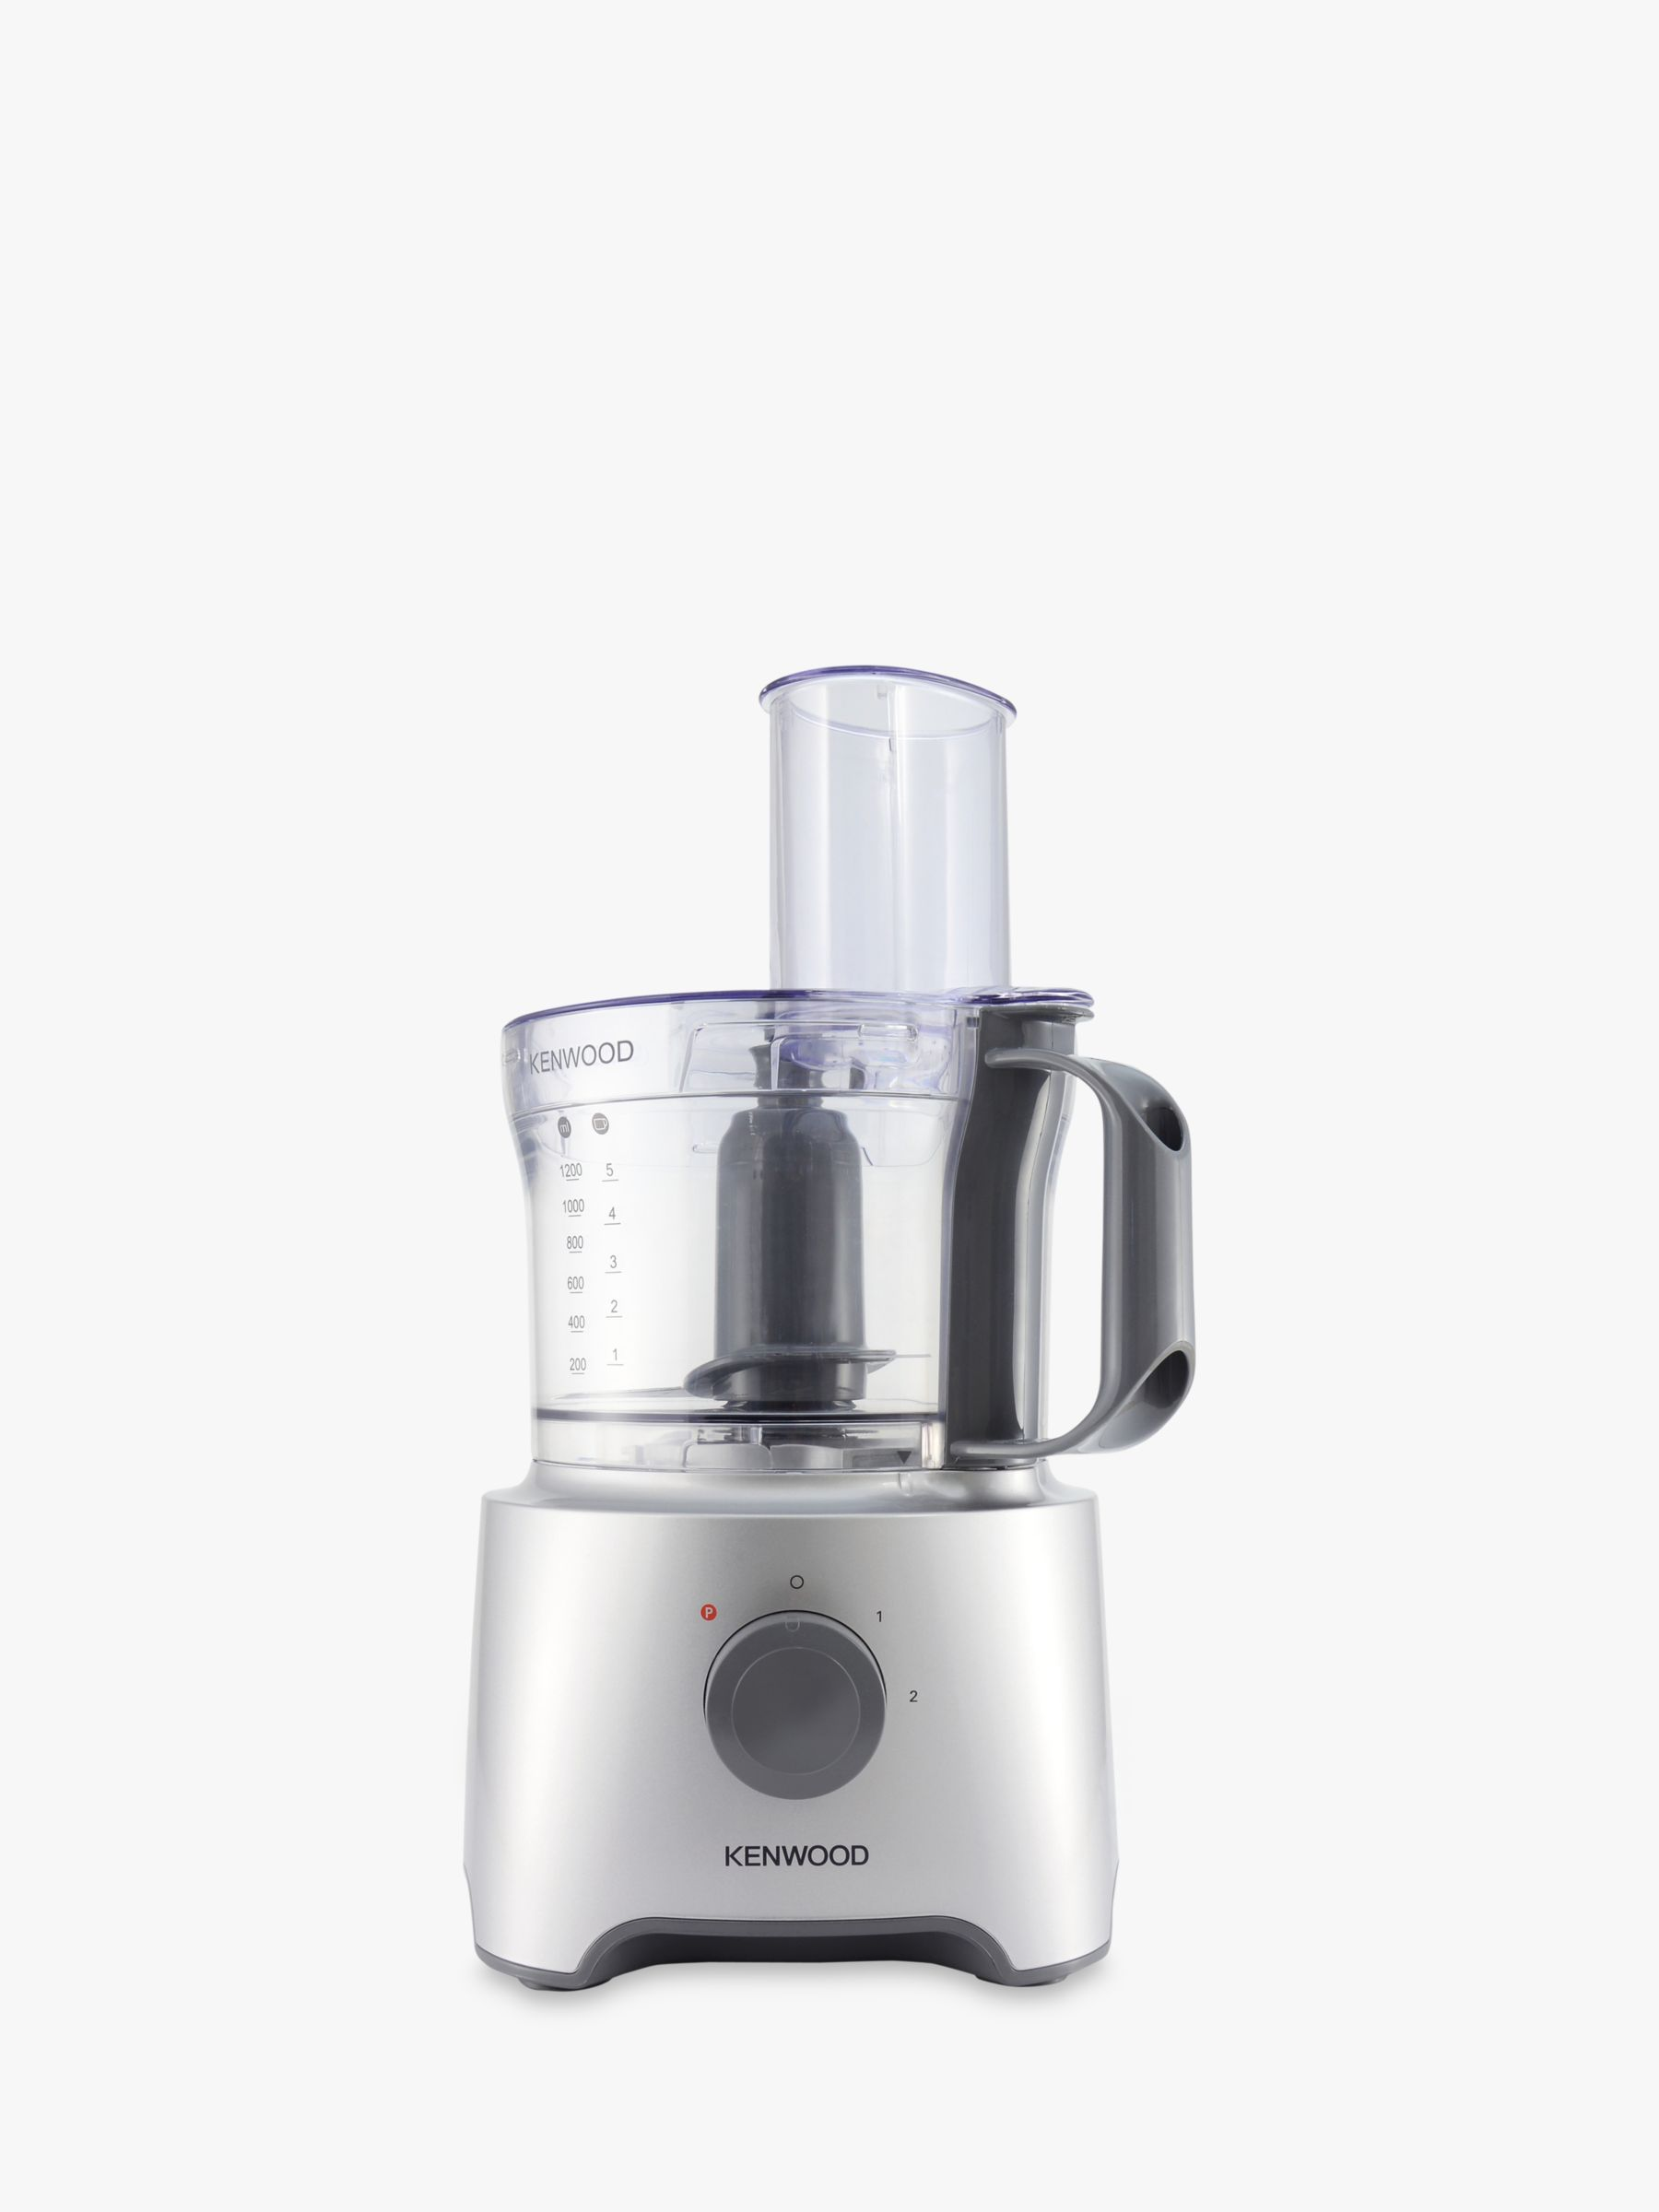 Kenwood Kenwood FDP301SI Multipro Compact Food Processor, Silver